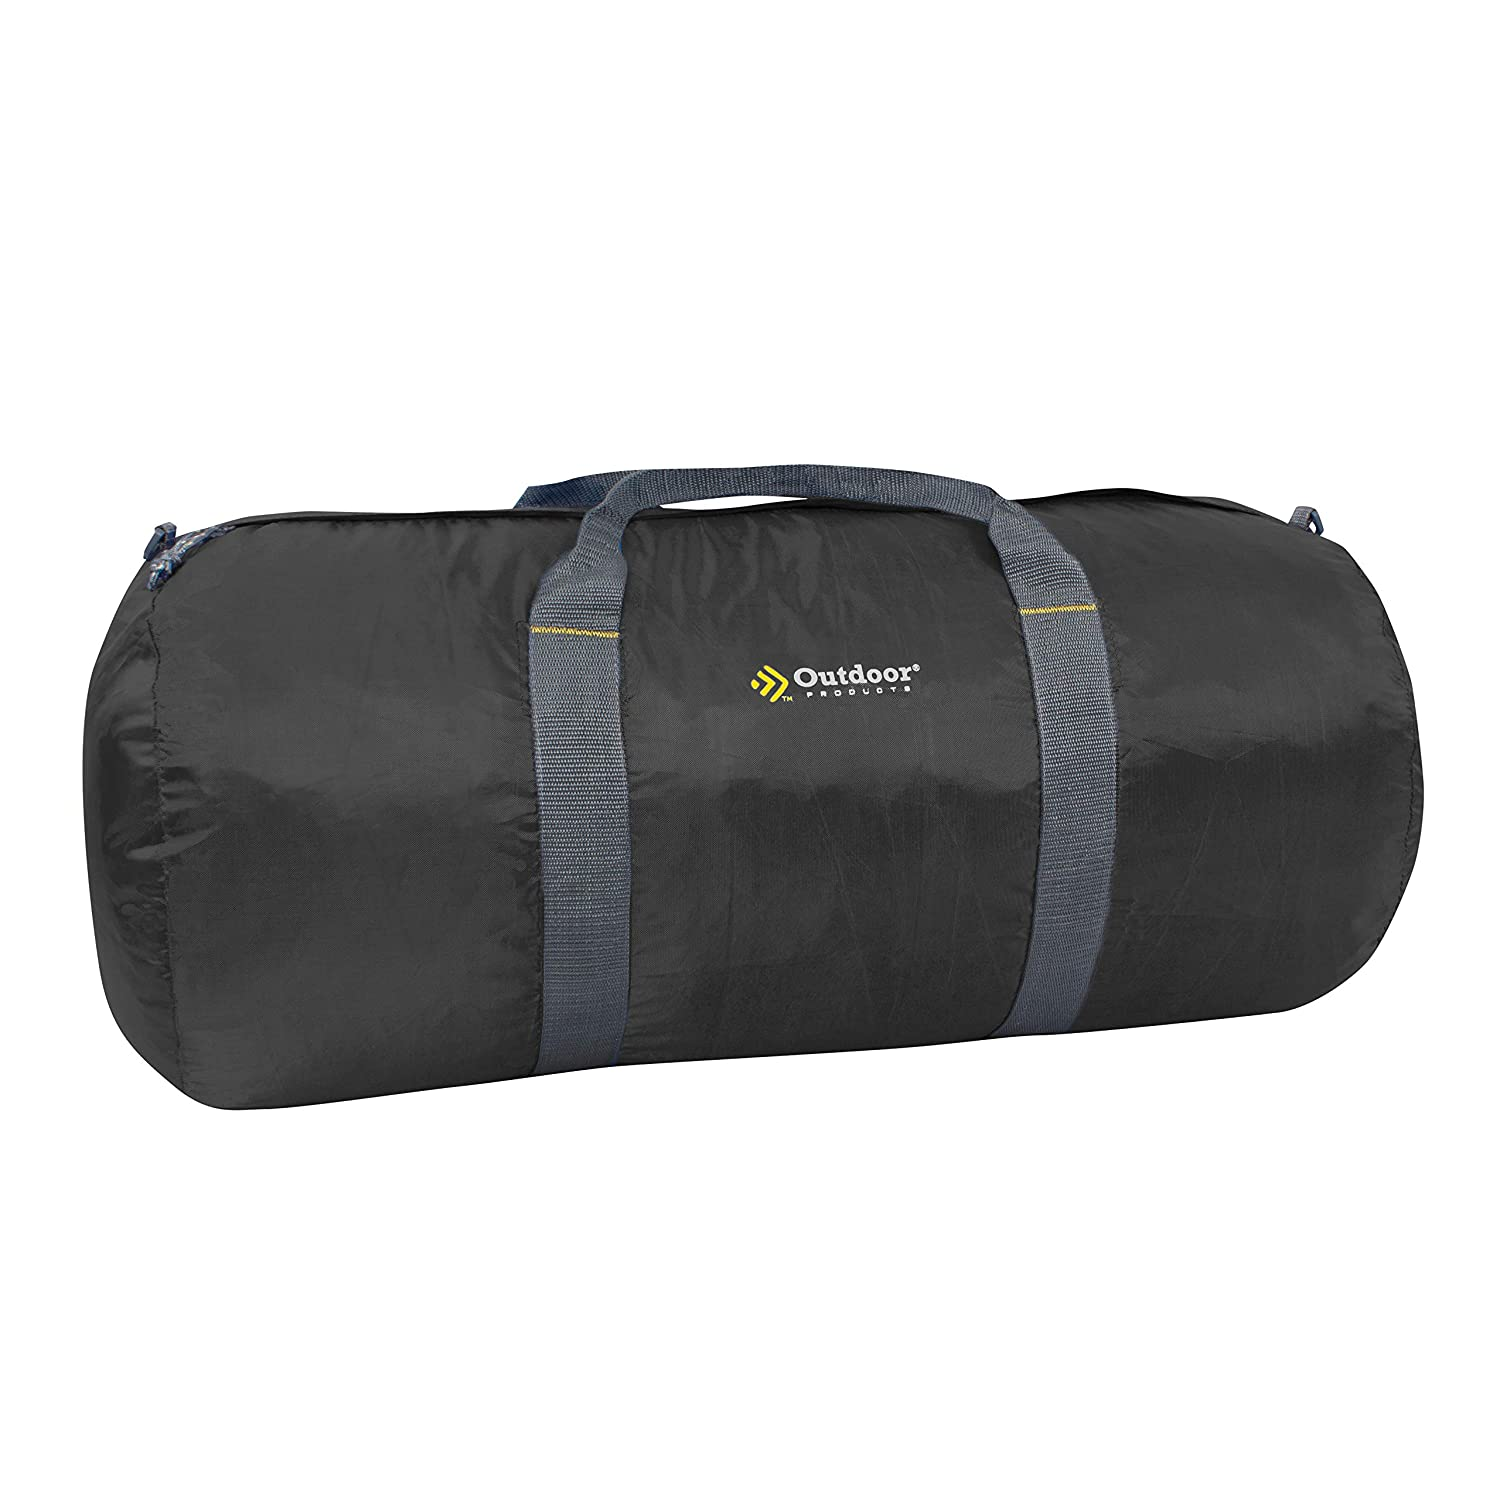 84b3bcb2d9d7 Outdoor Products Deluxe Duffle